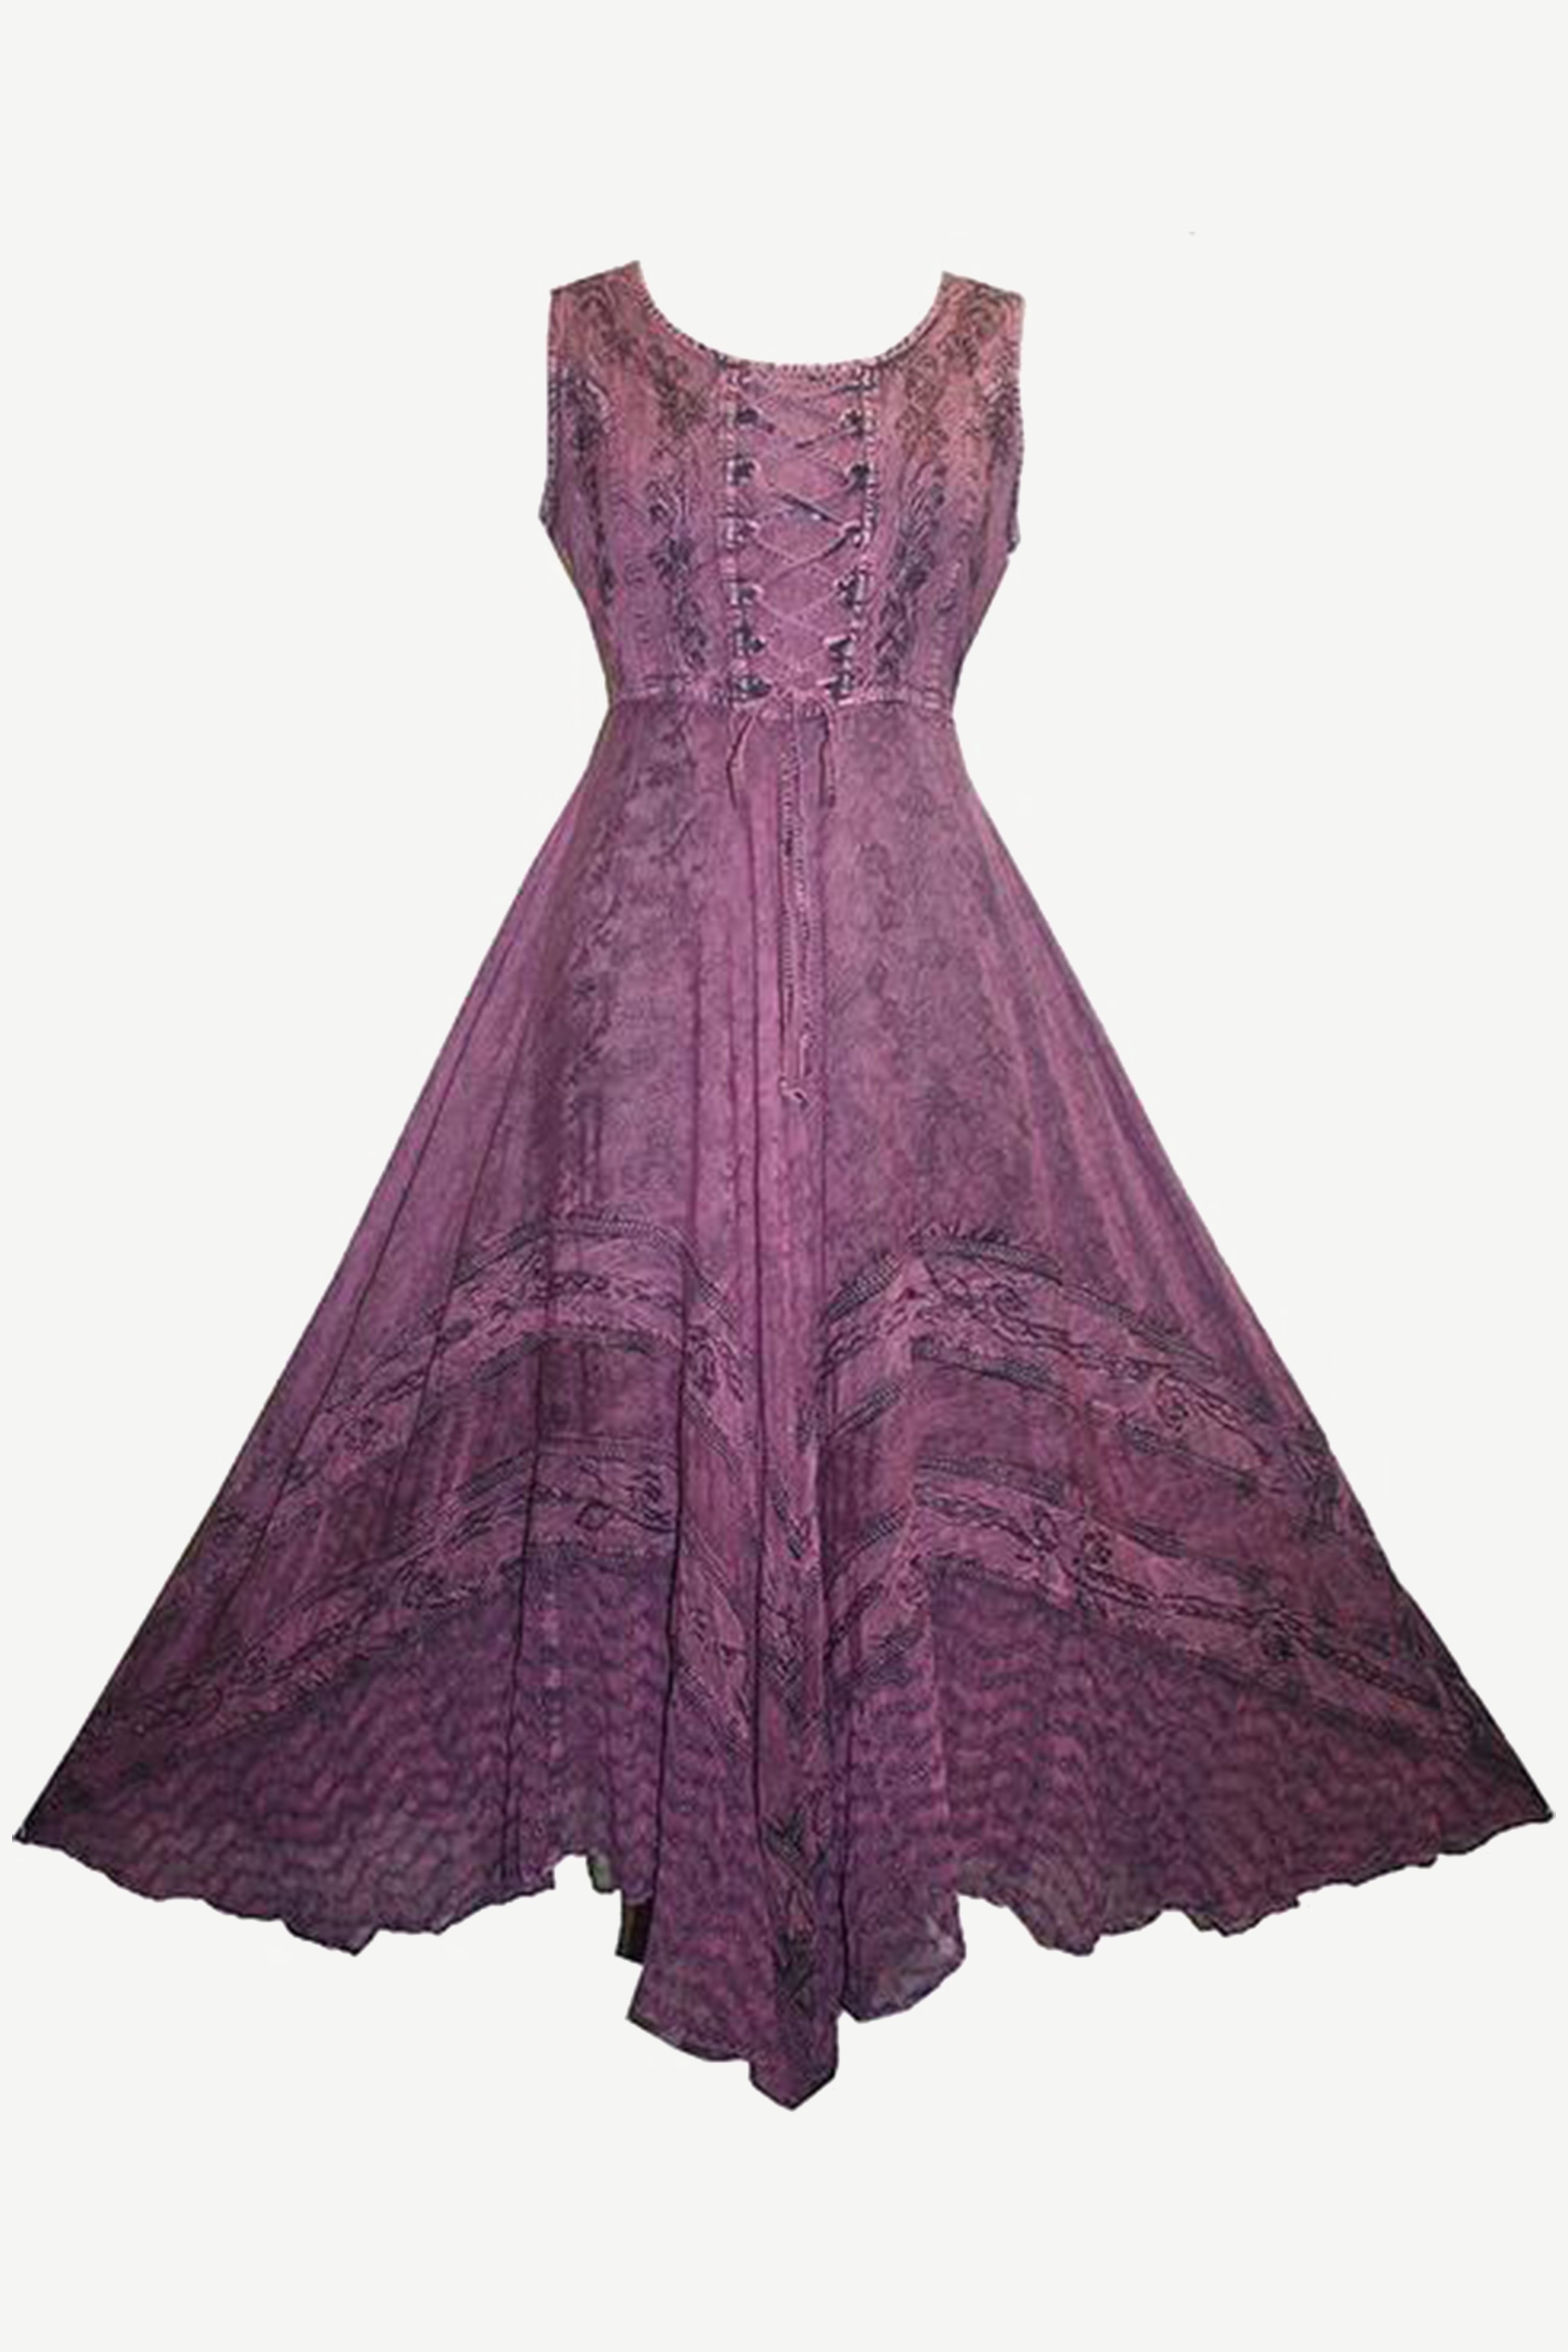 8668973725ec Sweet Empire Dazzling Flare Gothic Summer Costume Dress Gown - Agan  Traders, Plum